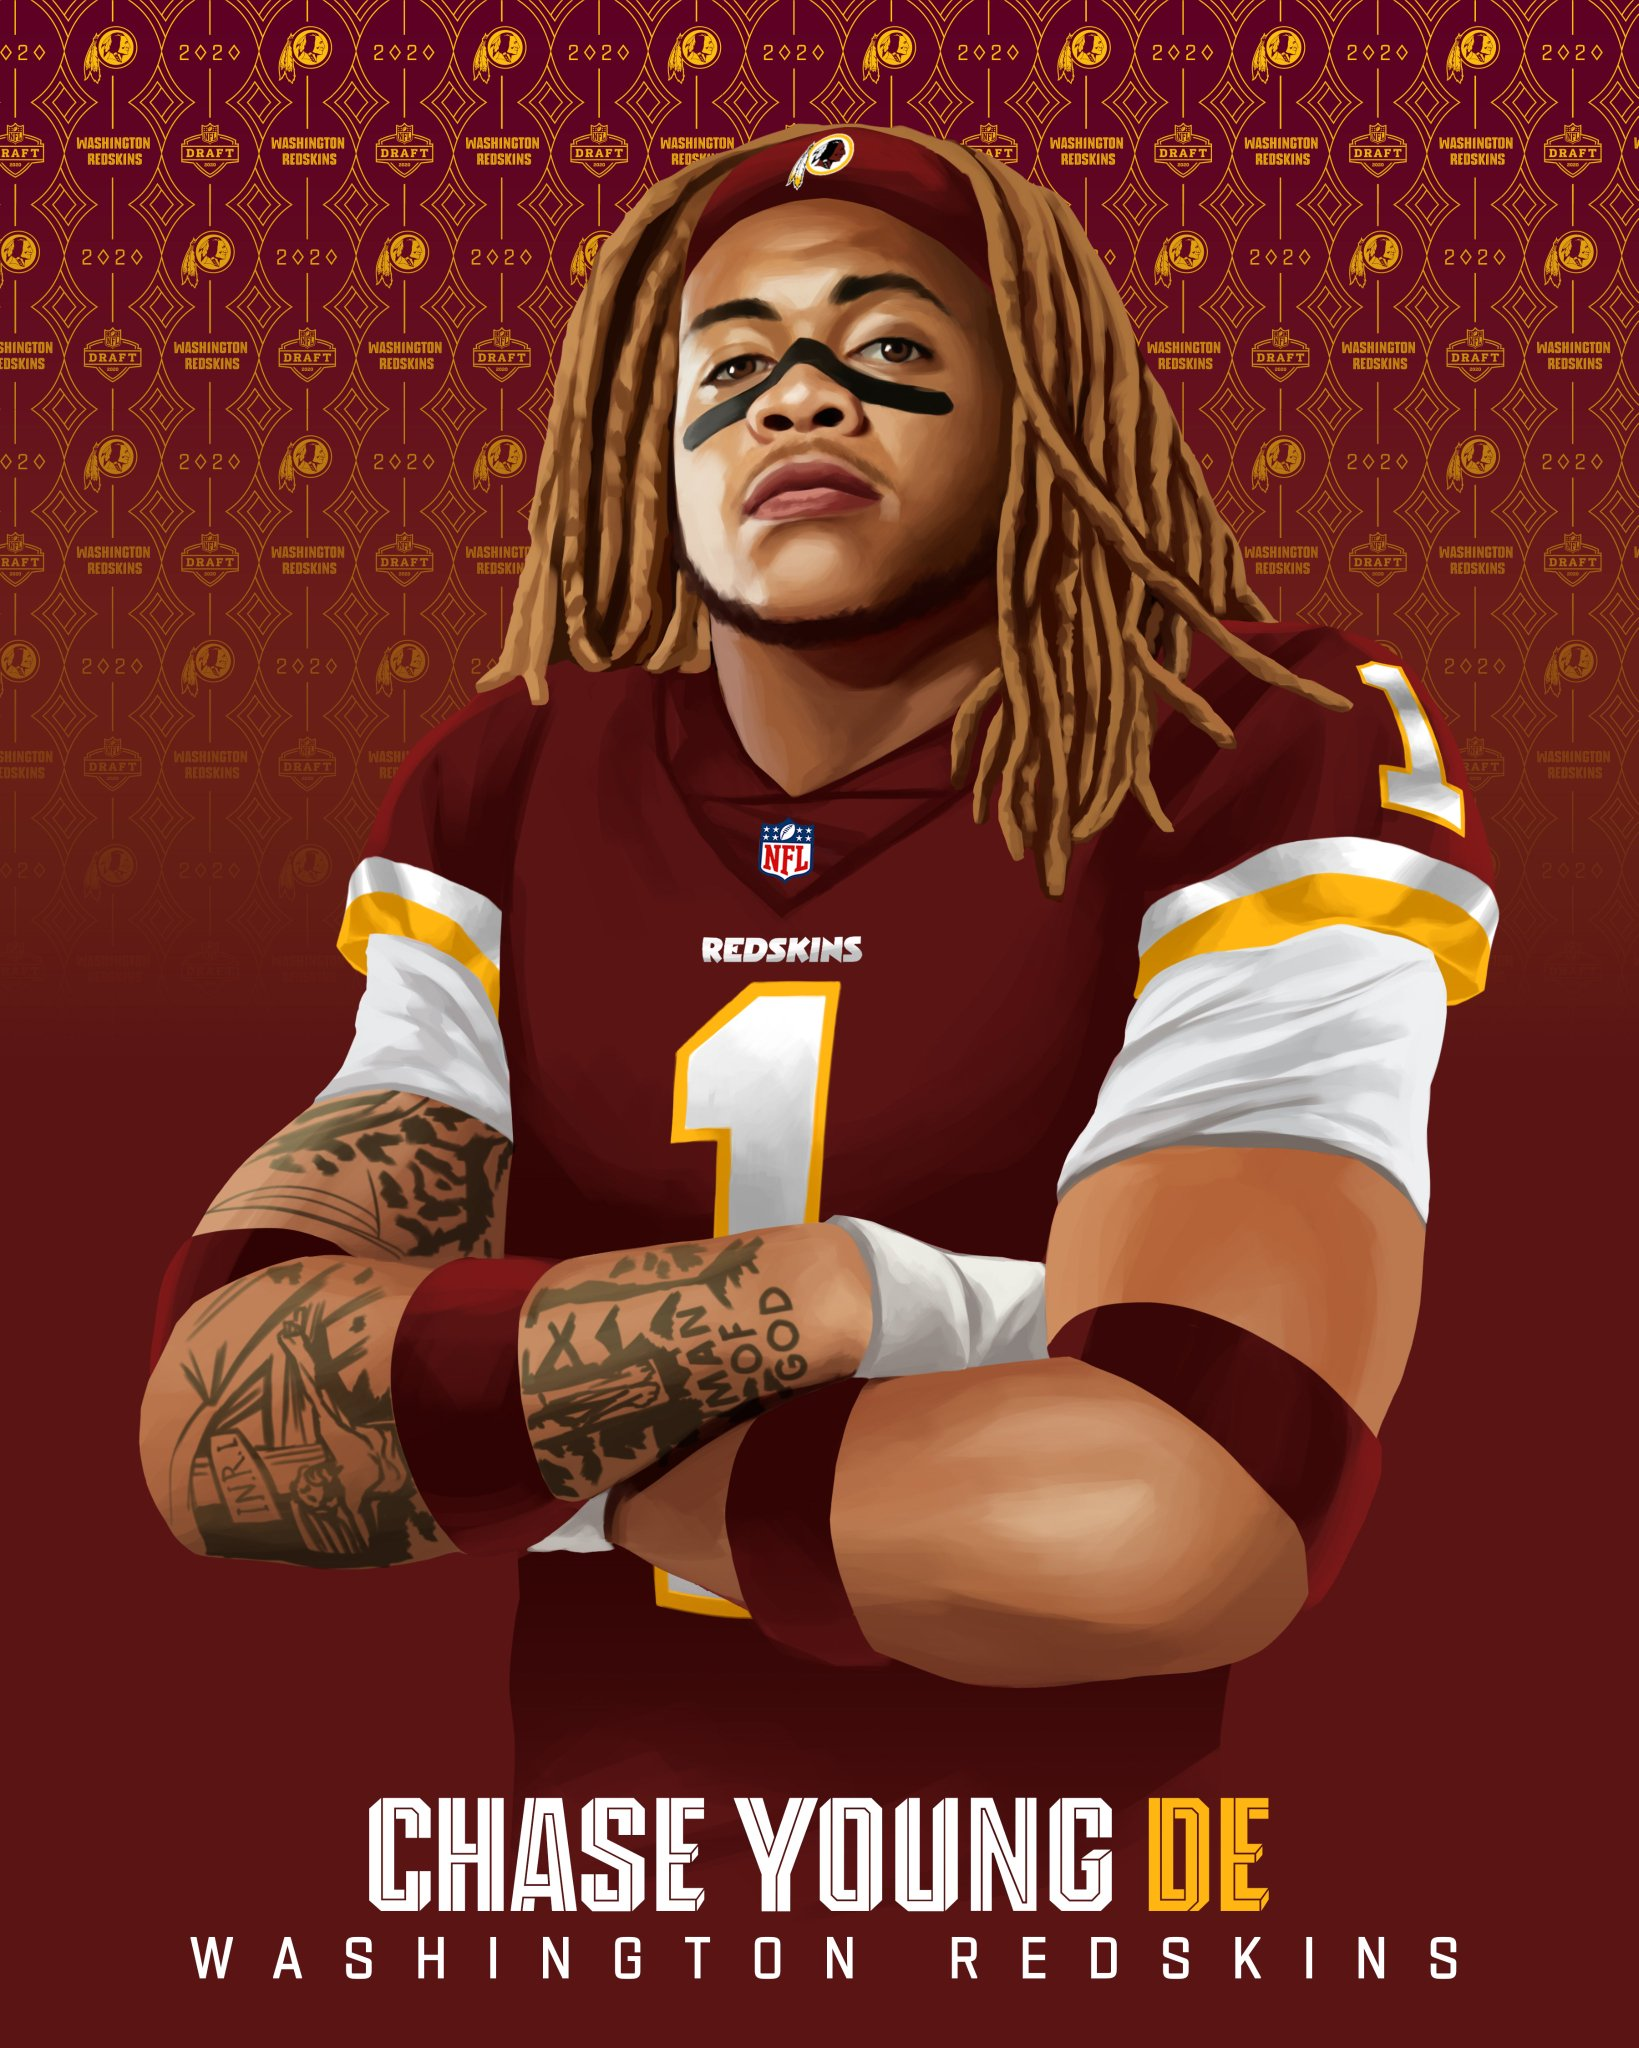 Chase Young